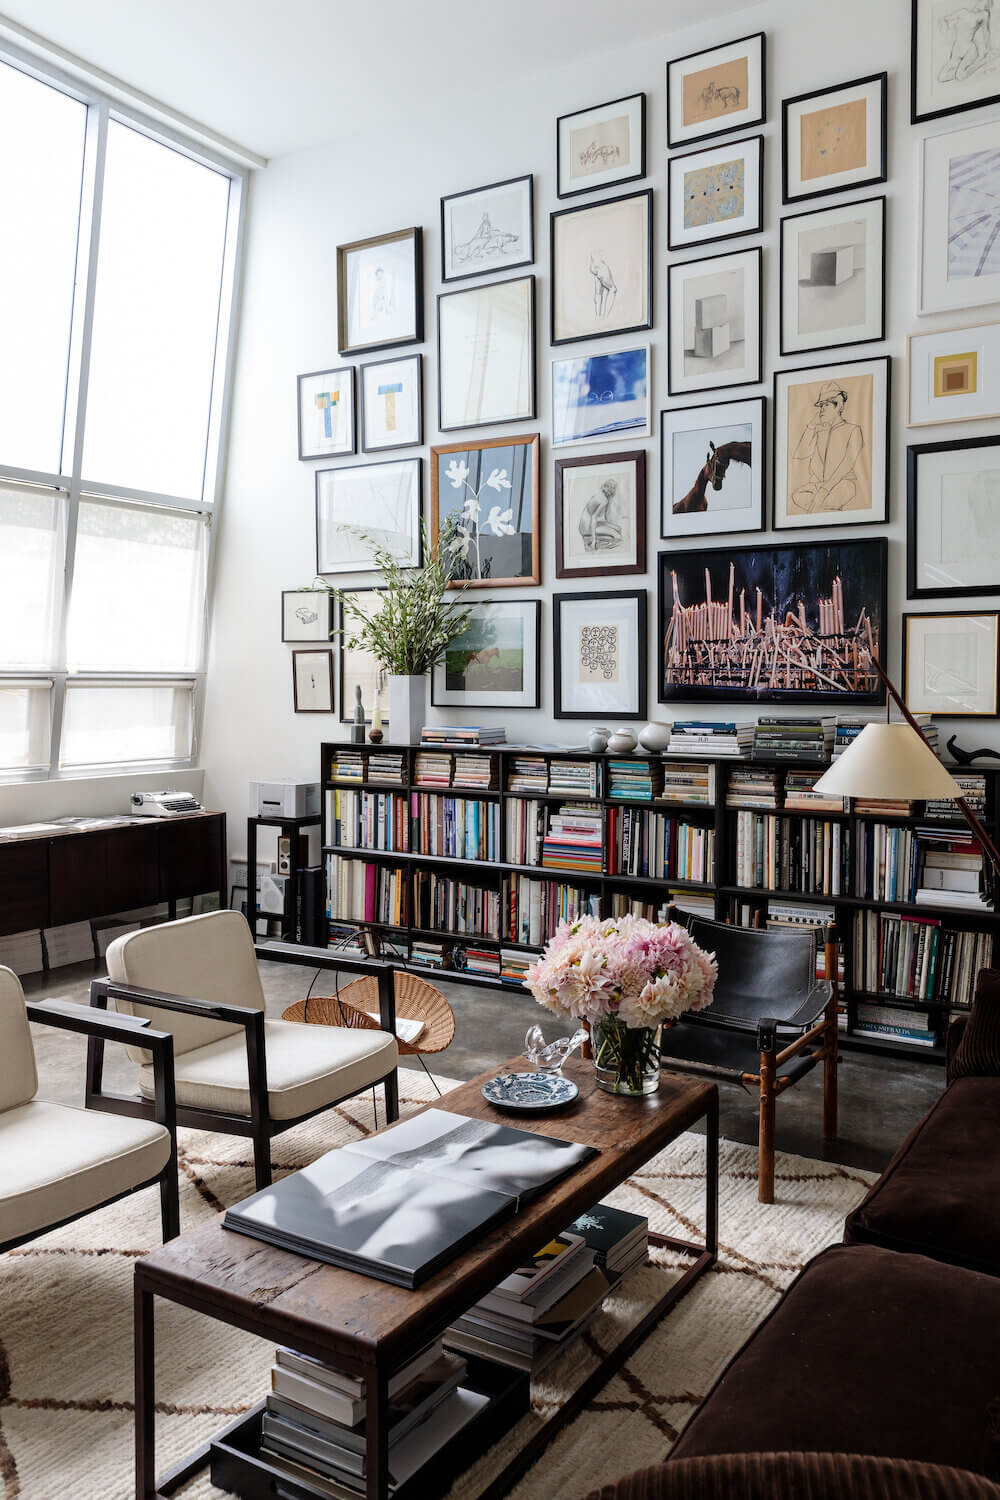 A Light Living Space Filled with Books and Art